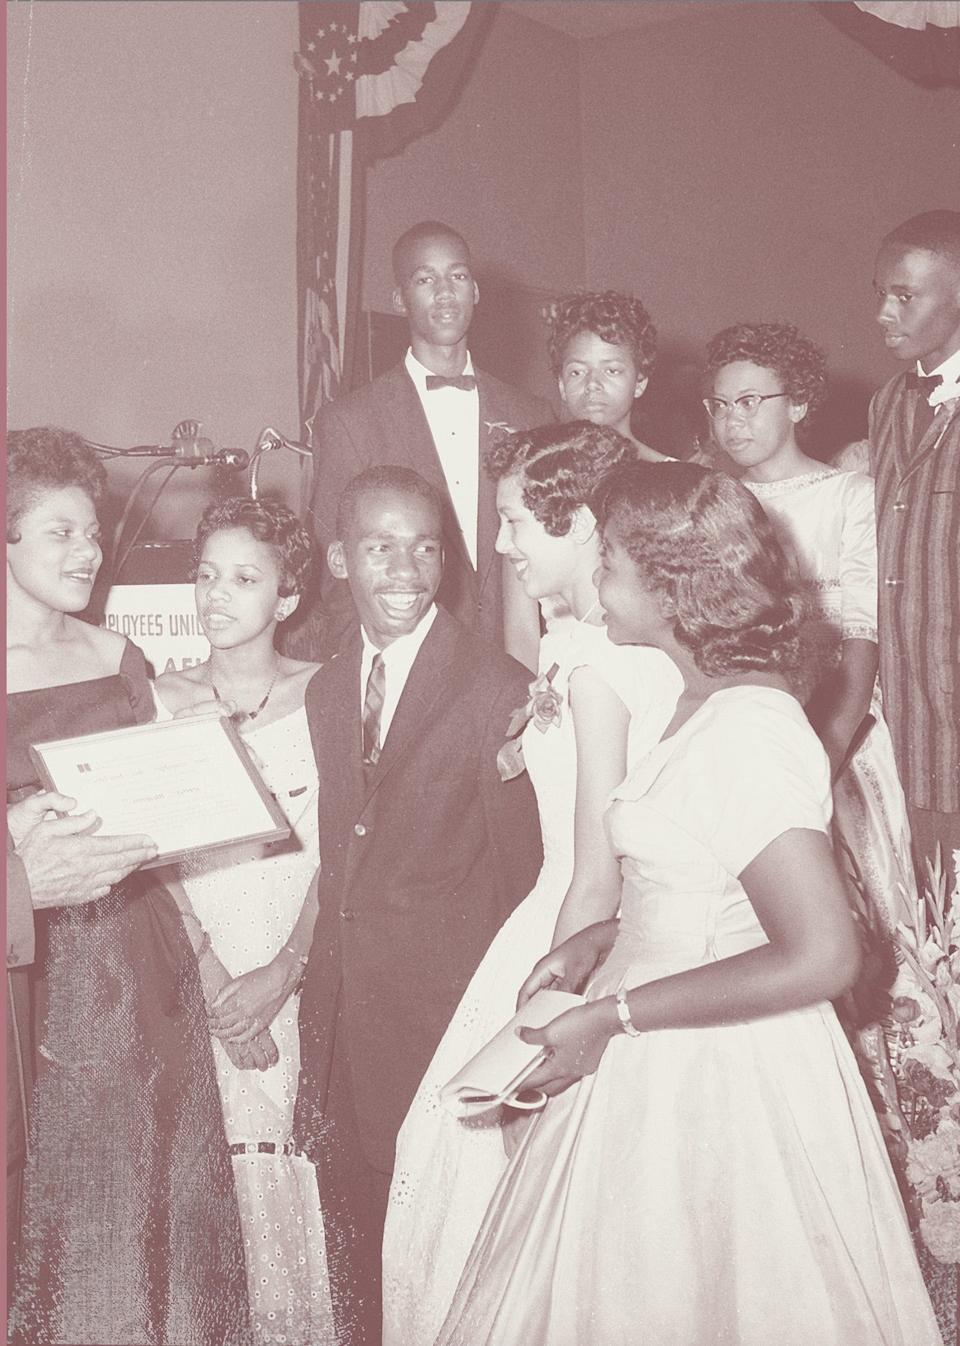 The women of the Little Rock 9